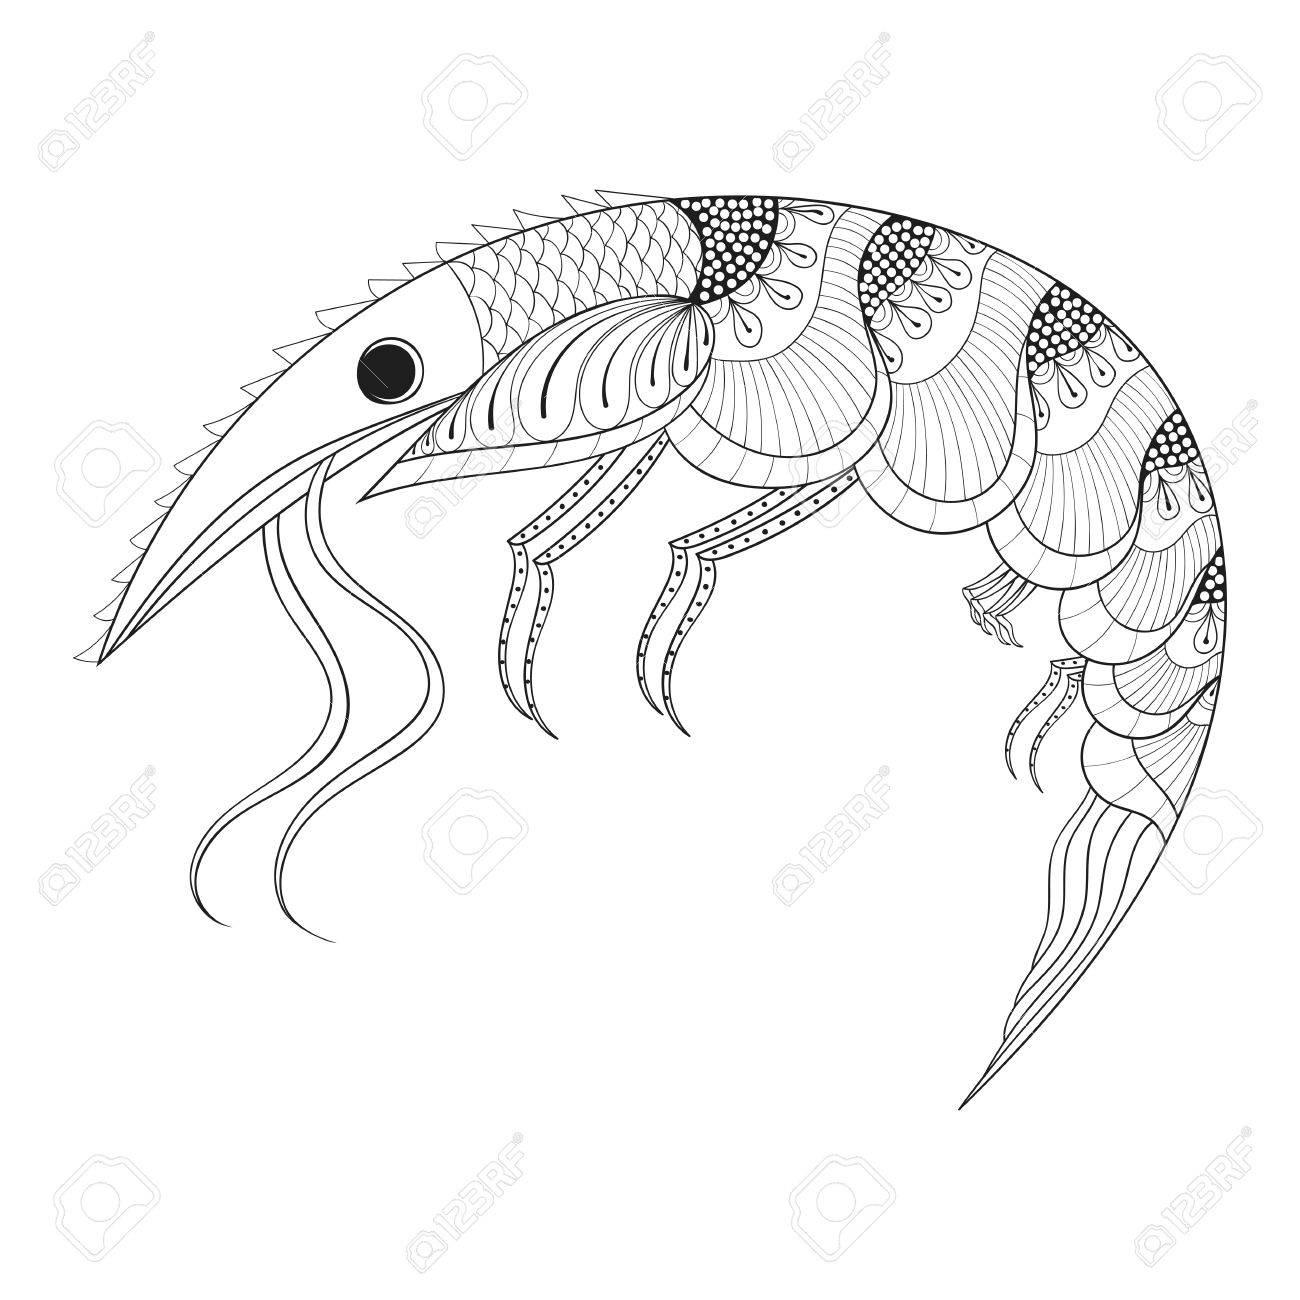 Marine animal coloring pages - 57081485 Hand Drawn Shrimp For Adult Anti Stress Coloring Pages Monochrome Post Card Mehendi T Shirt Drawing Marine Animals